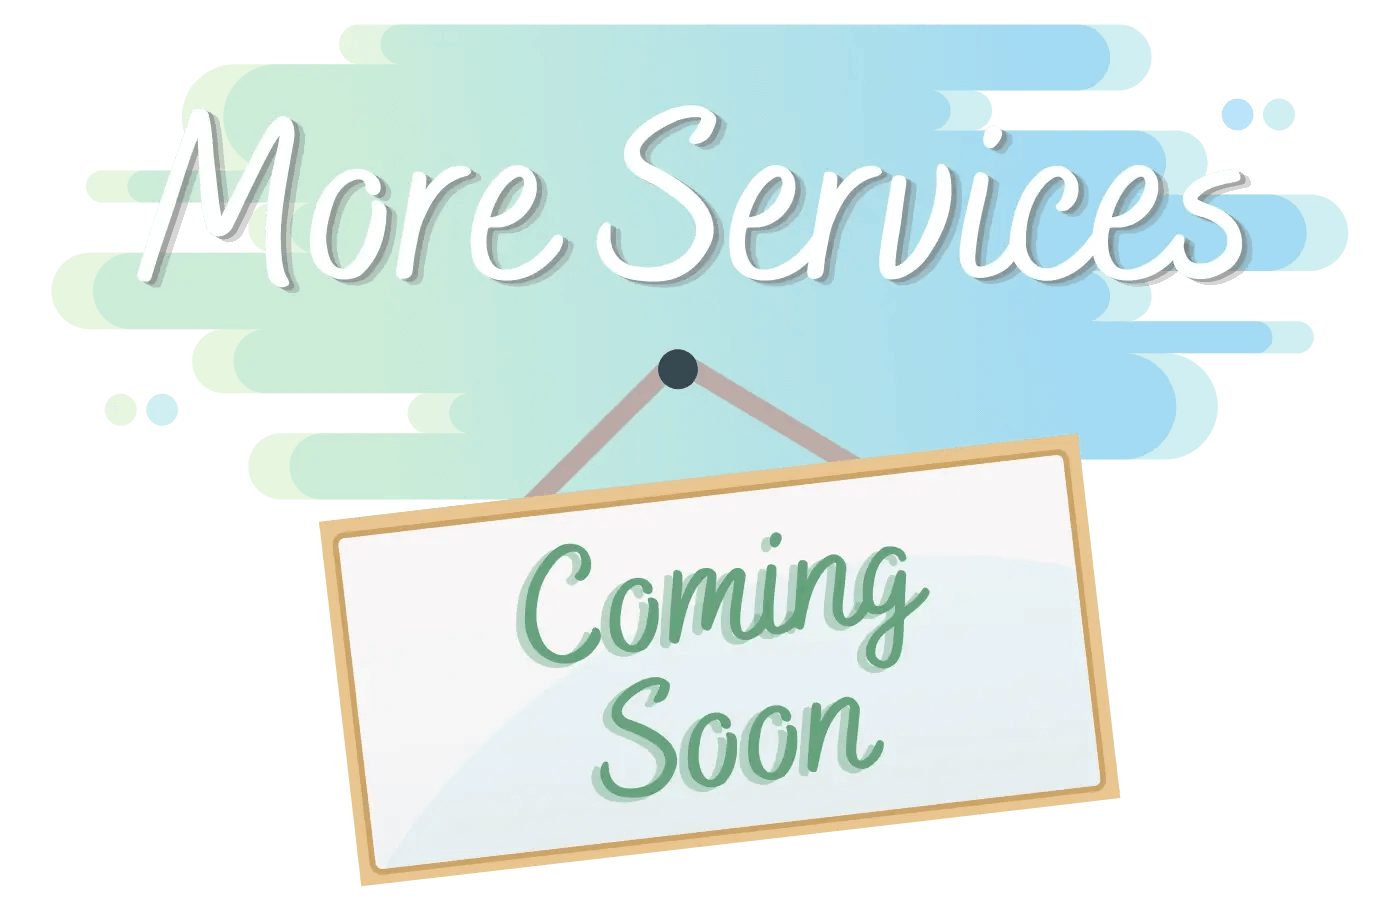 More services coming soon